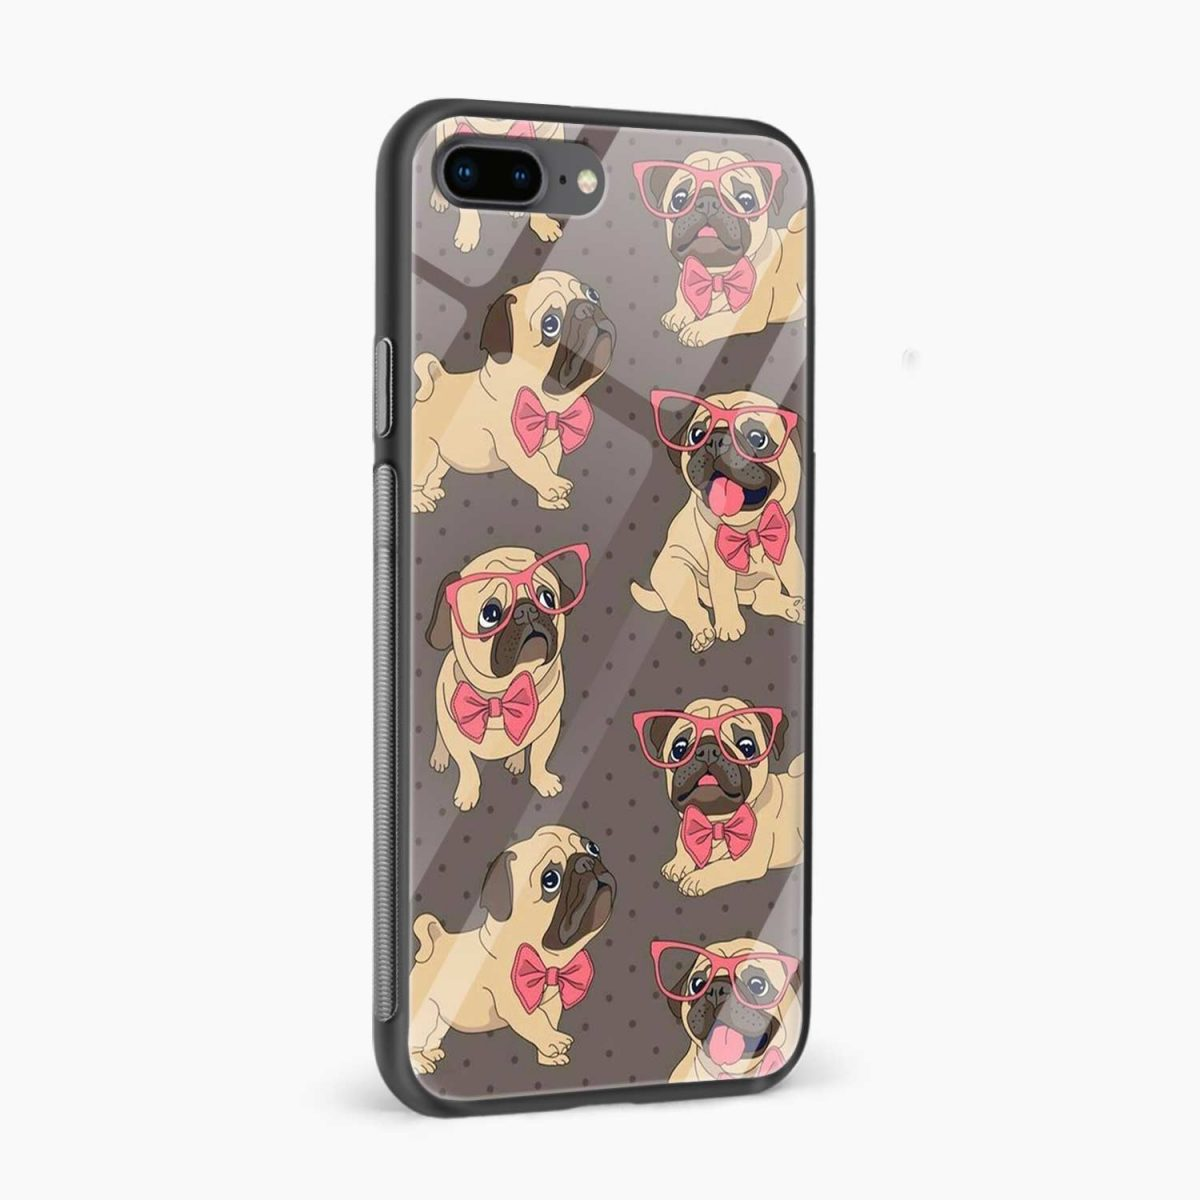 pug cute dog animal pattern diagonal view apple iphone 7 8 plus back cover 5